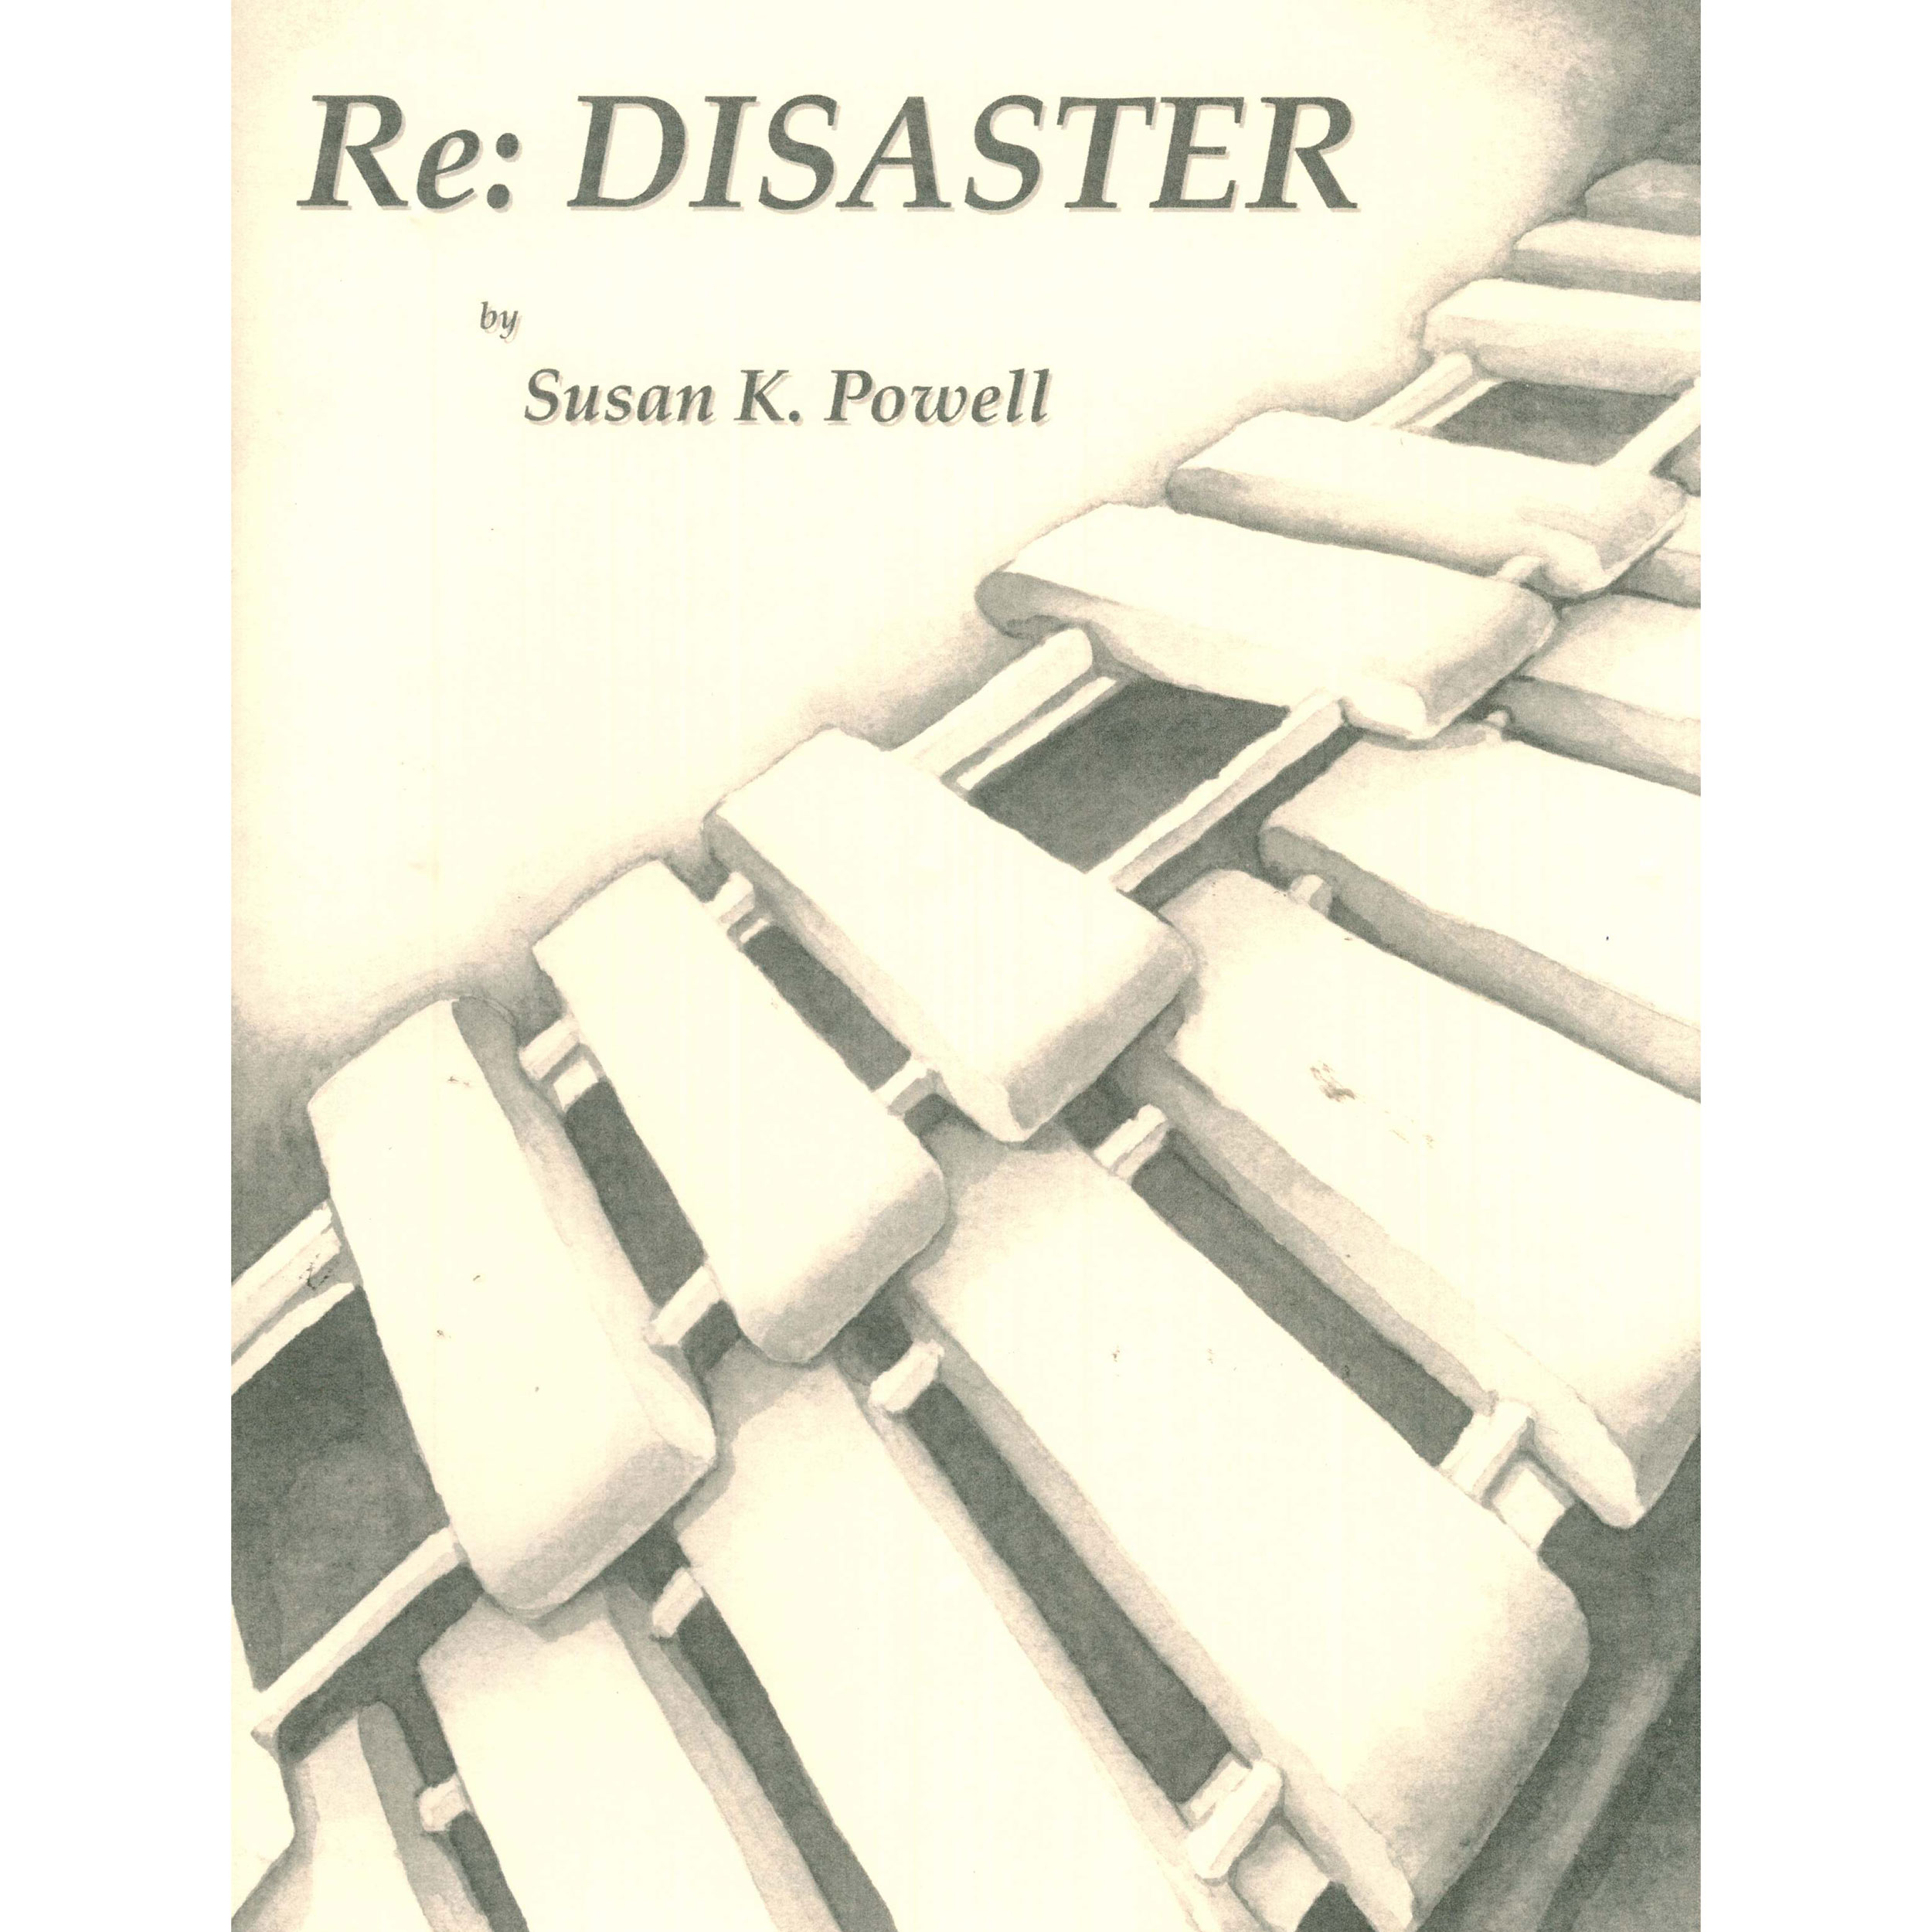 RE: Disaster by Susan Powell